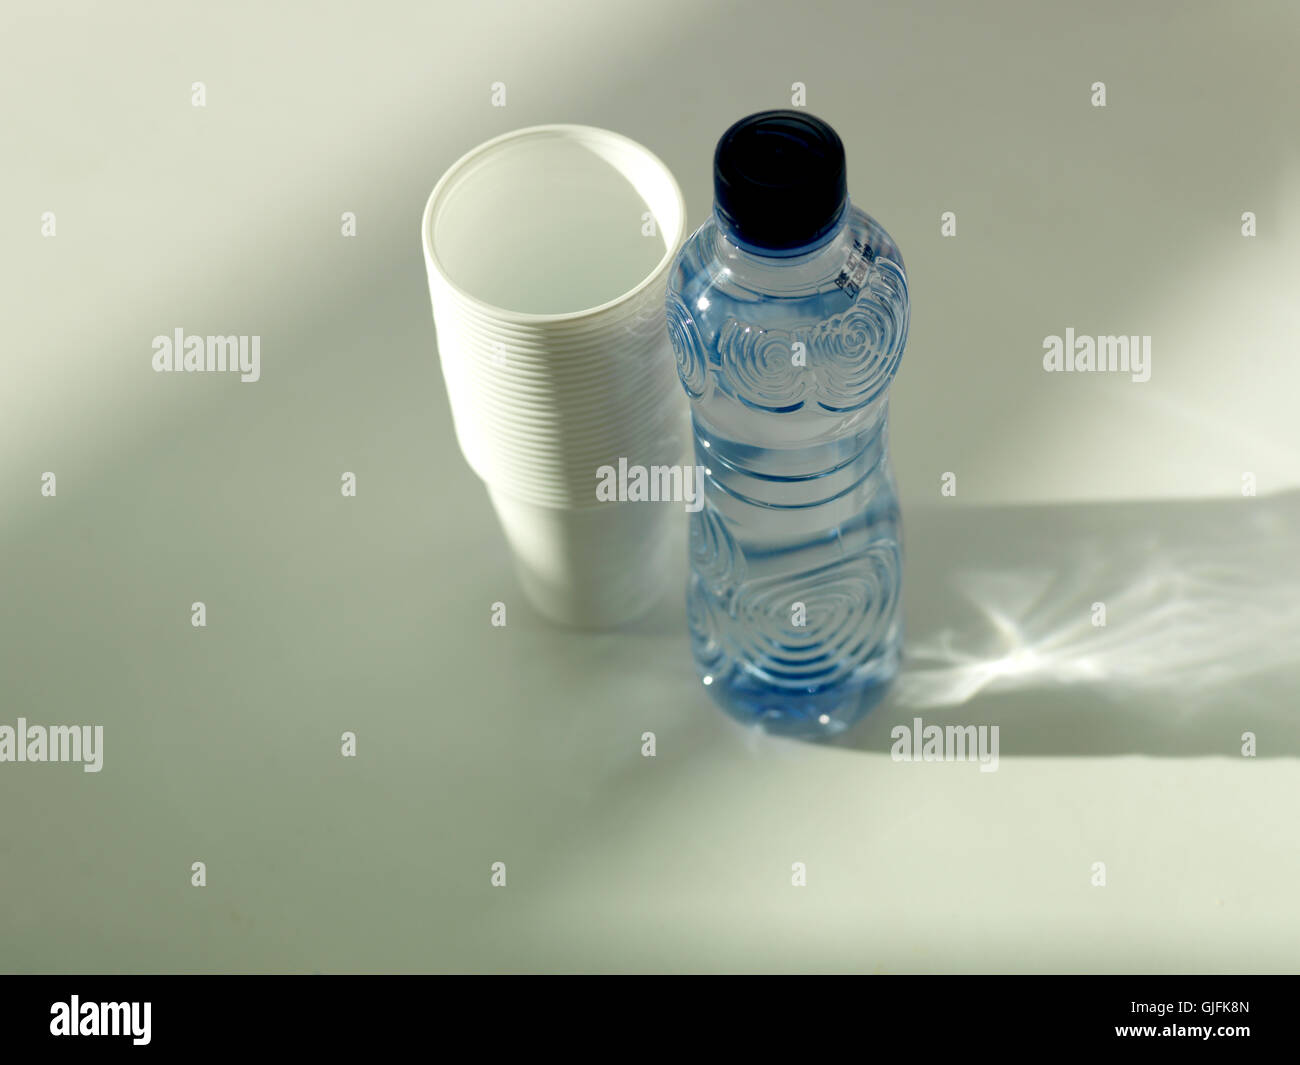 WBottle of Water with disposable cups - Stock Image